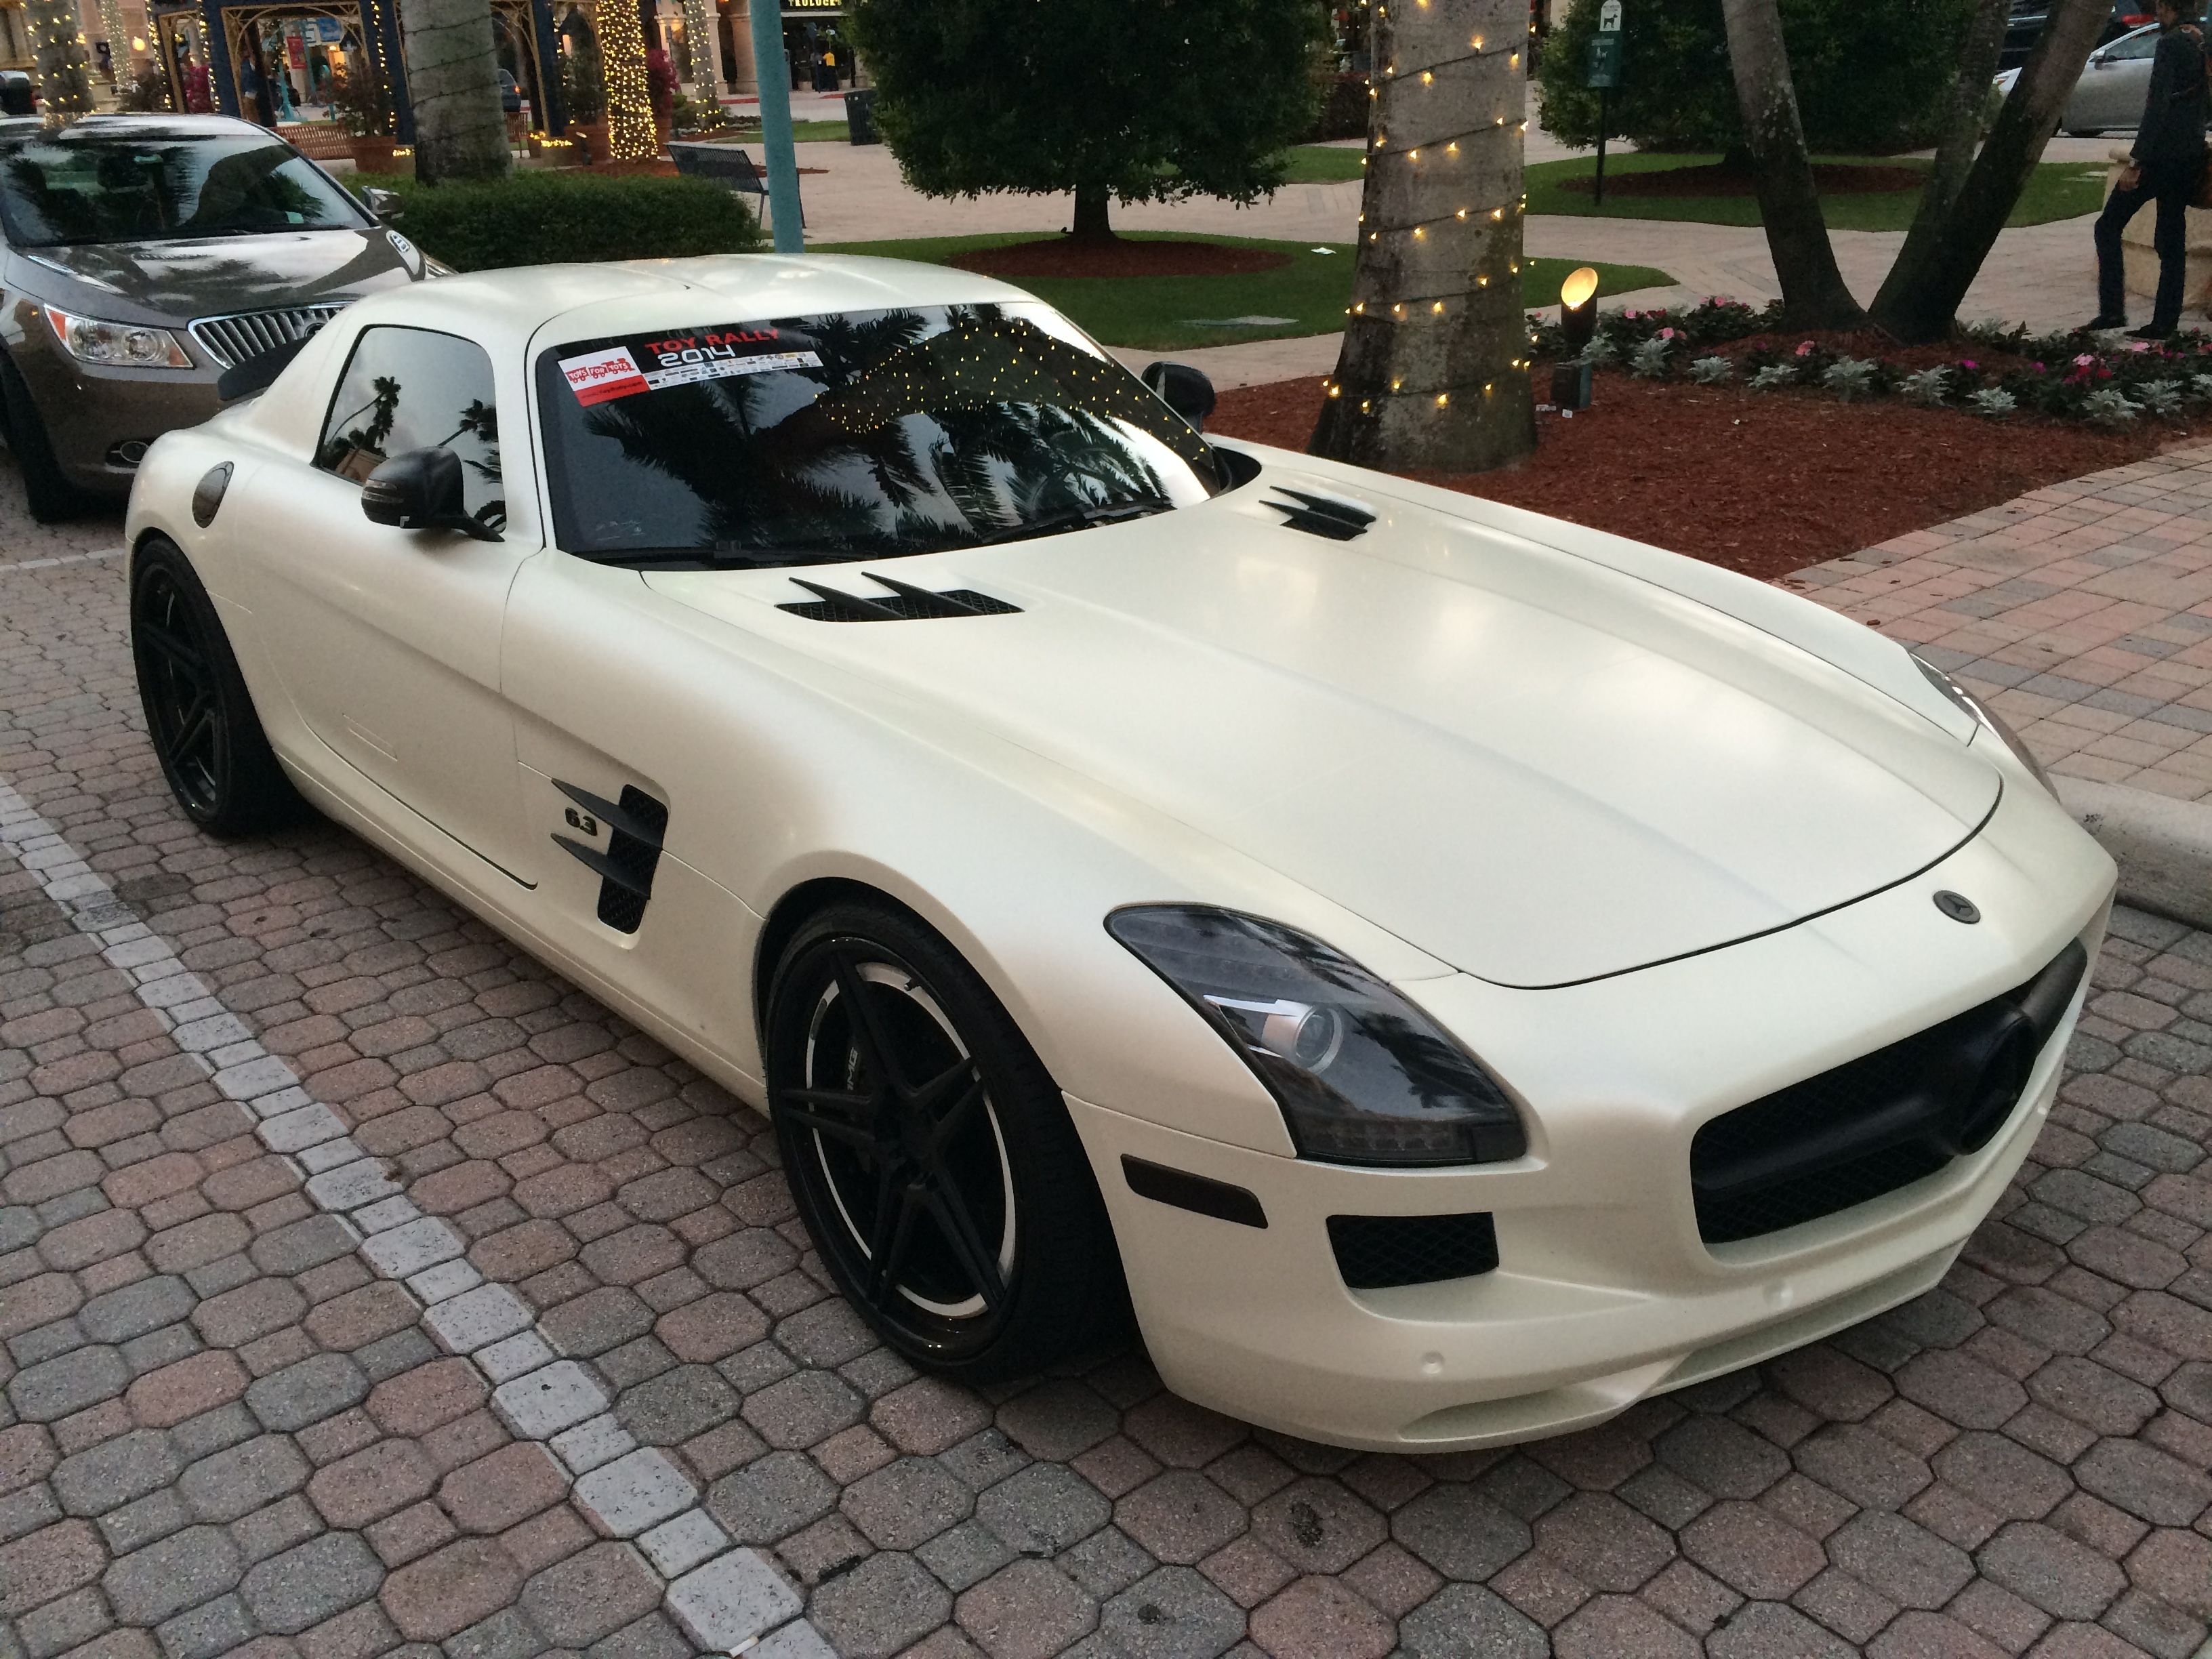 slick benz mizner park in boca raton fl luxury exotic car art